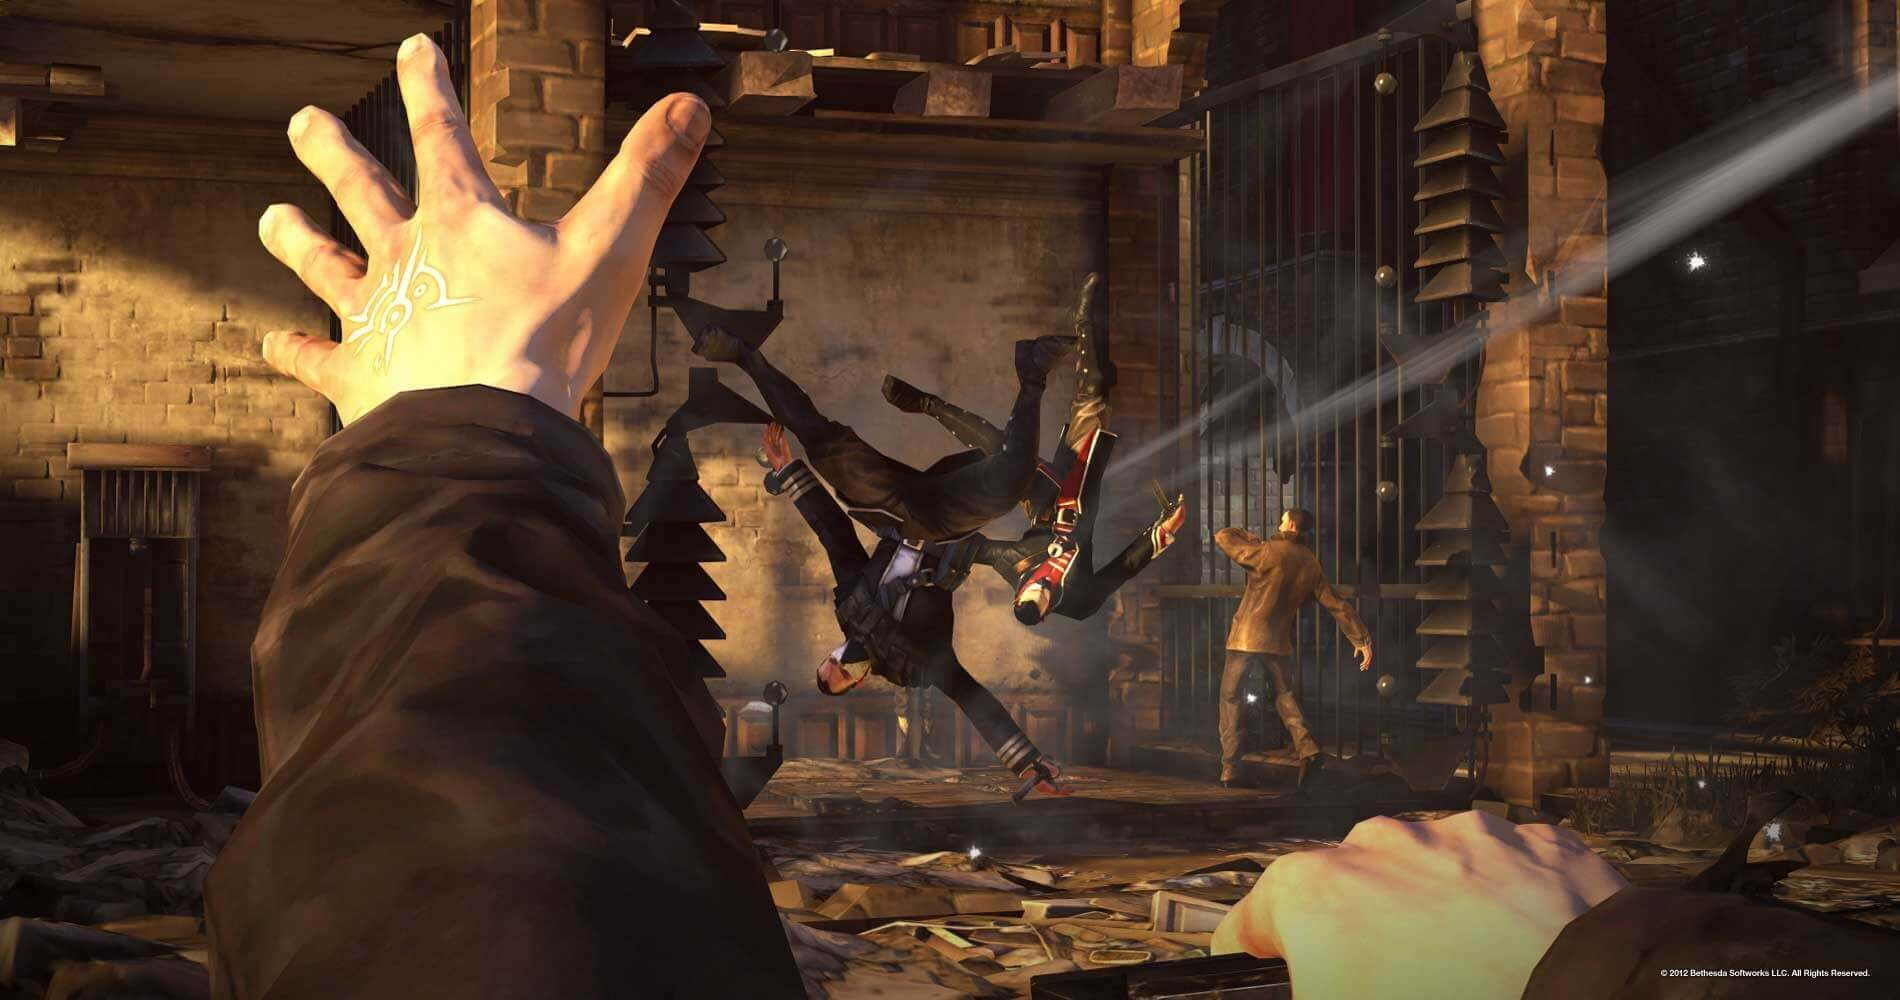 Dishonored: The Definitive Edition